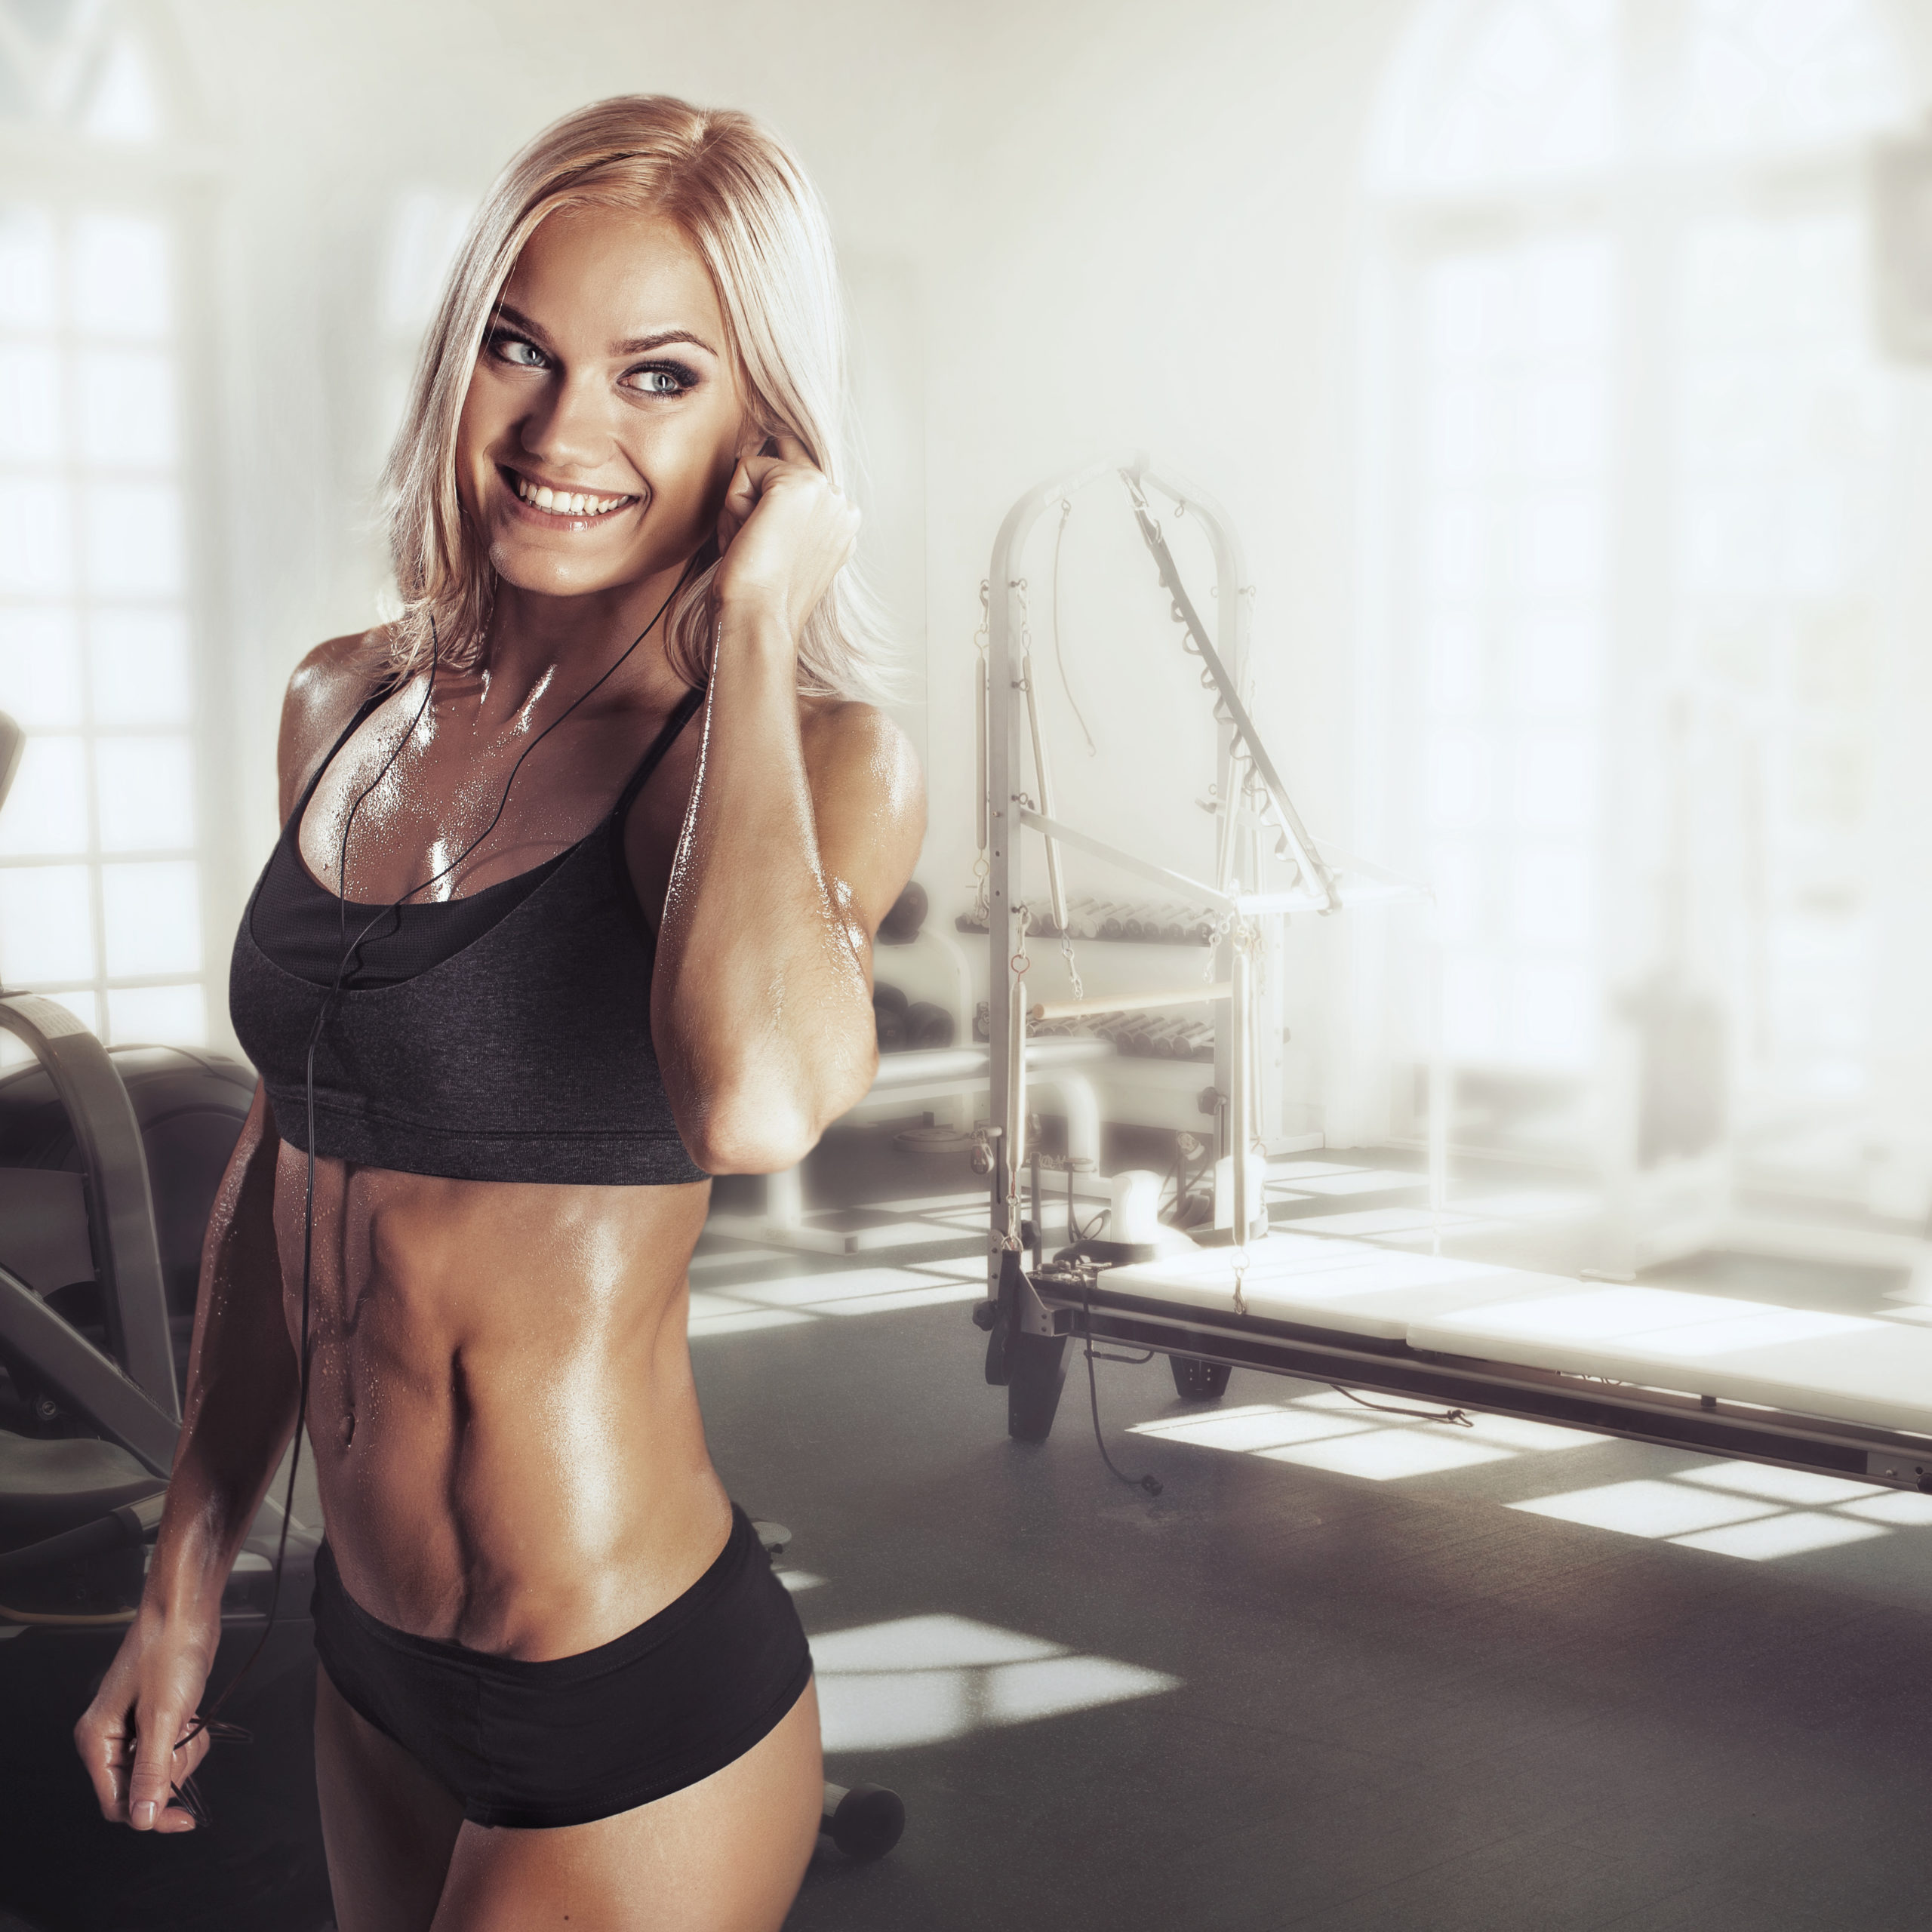 $19 FITNESS ALLOWANCE – Monthly